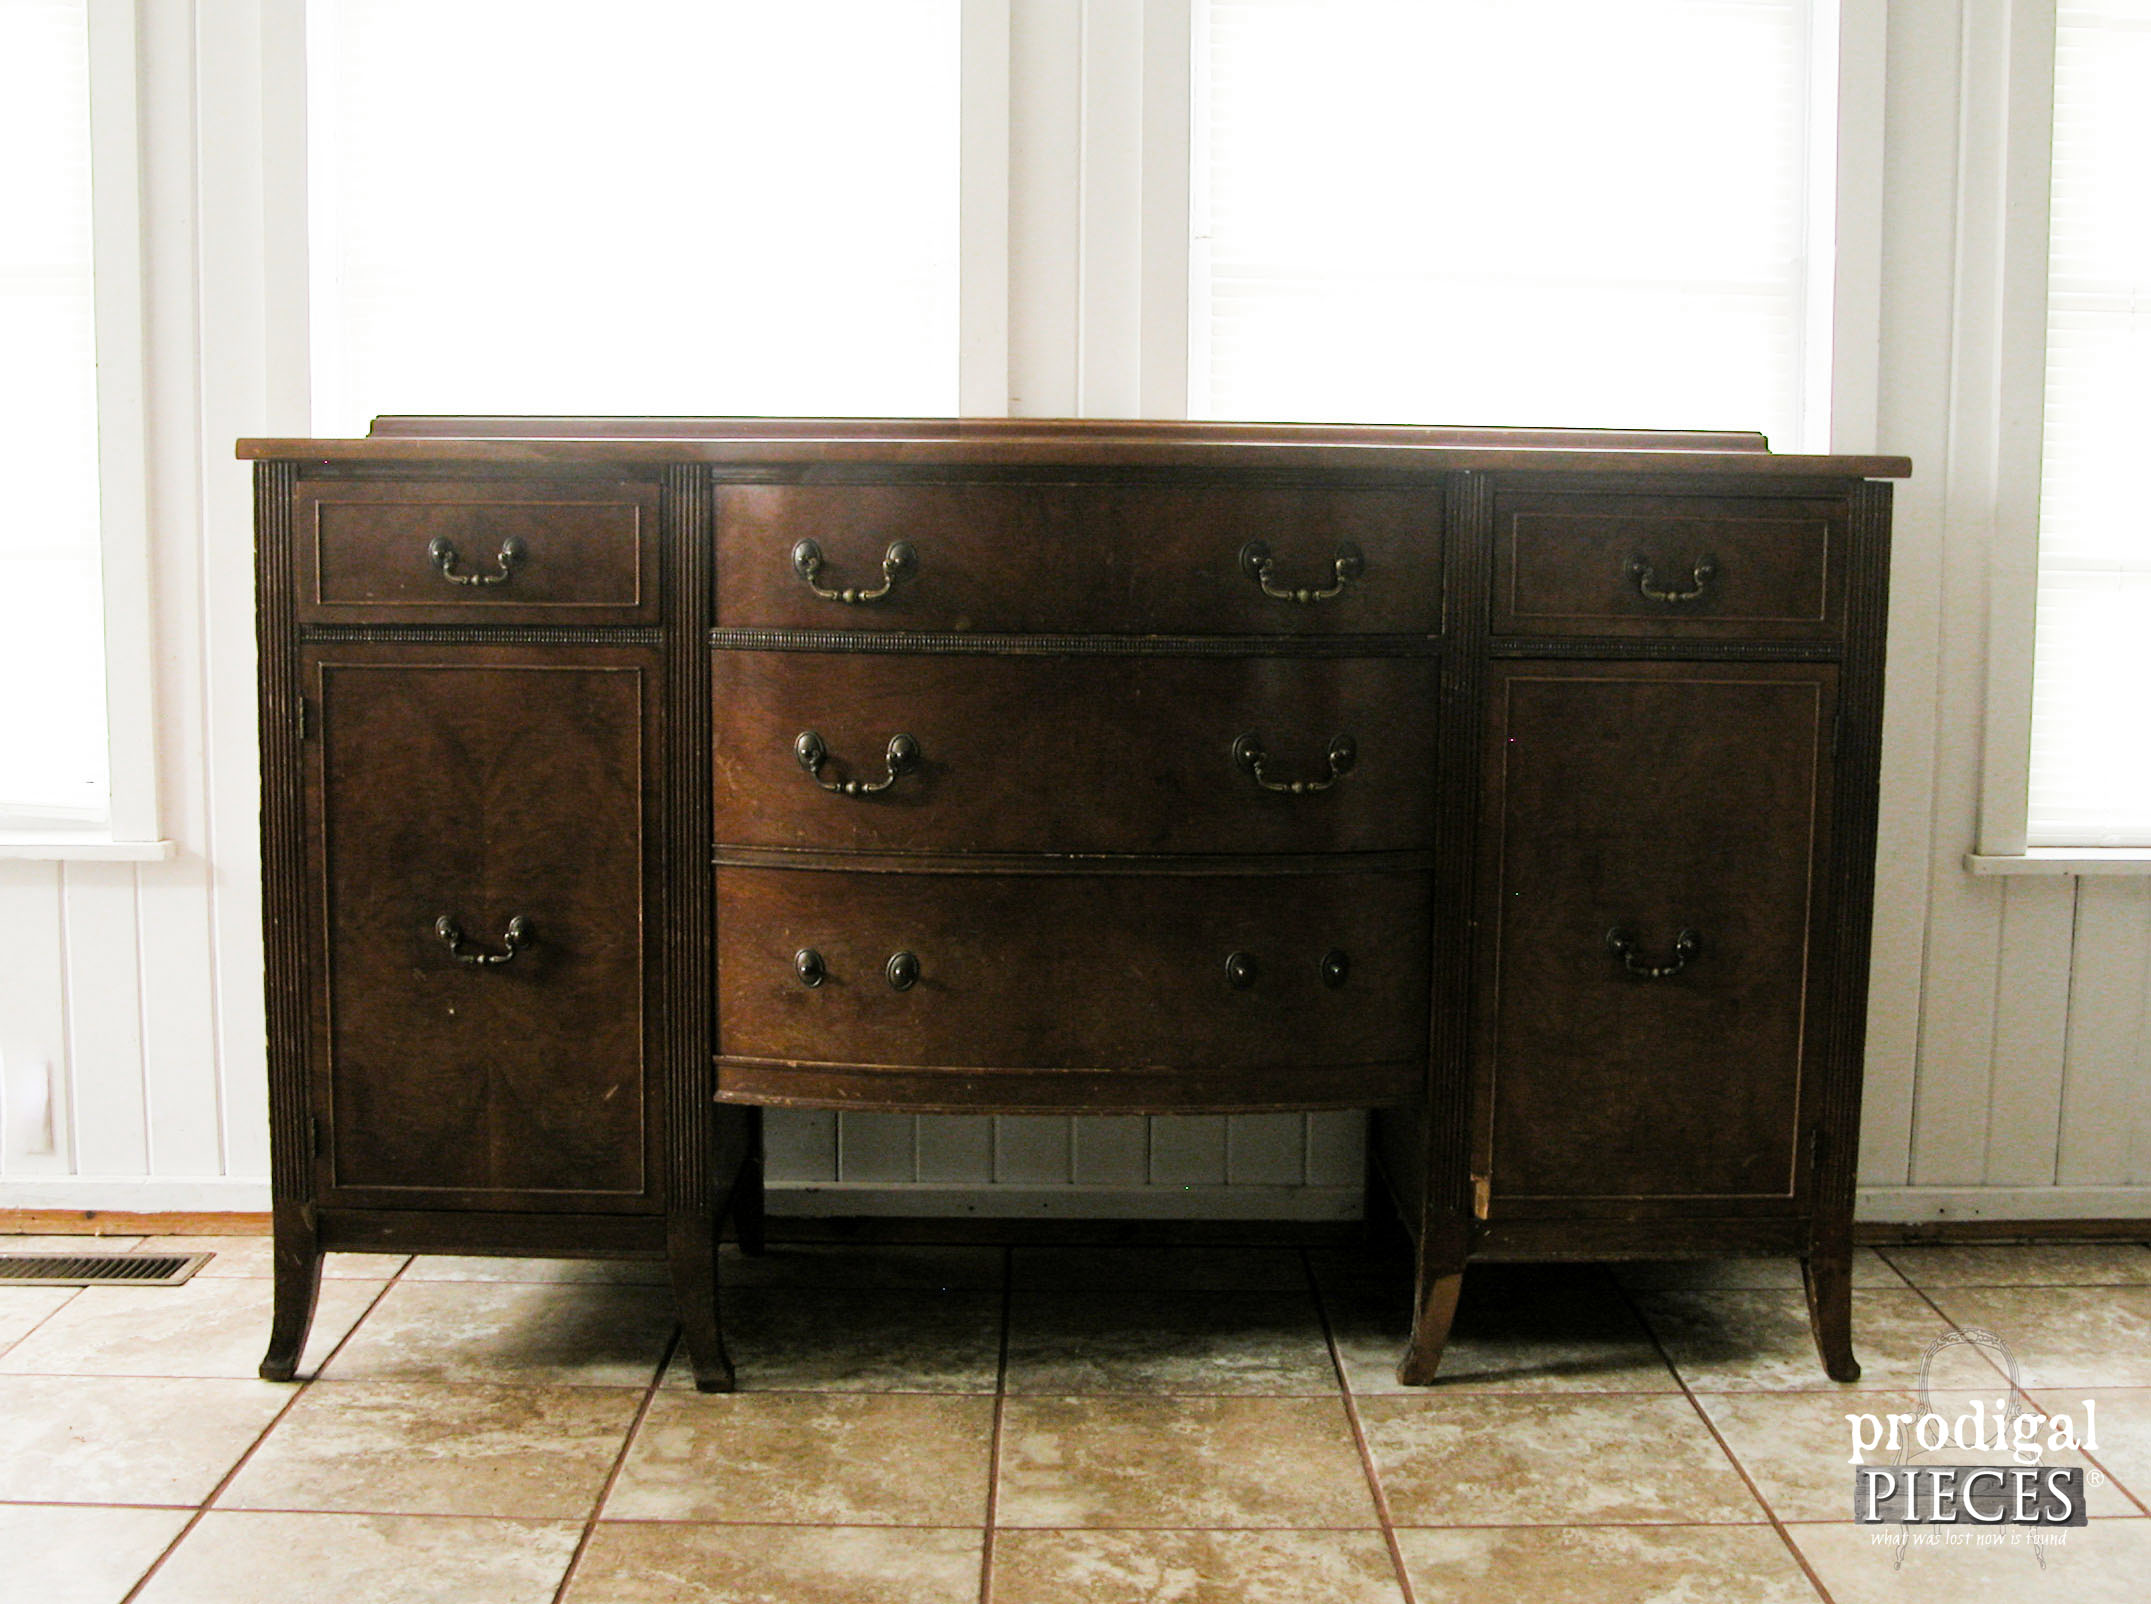 Vintage Duncan Phyfe Sideboard Makeover Before | Prodigal Pieces | www.prodigalpieces.com